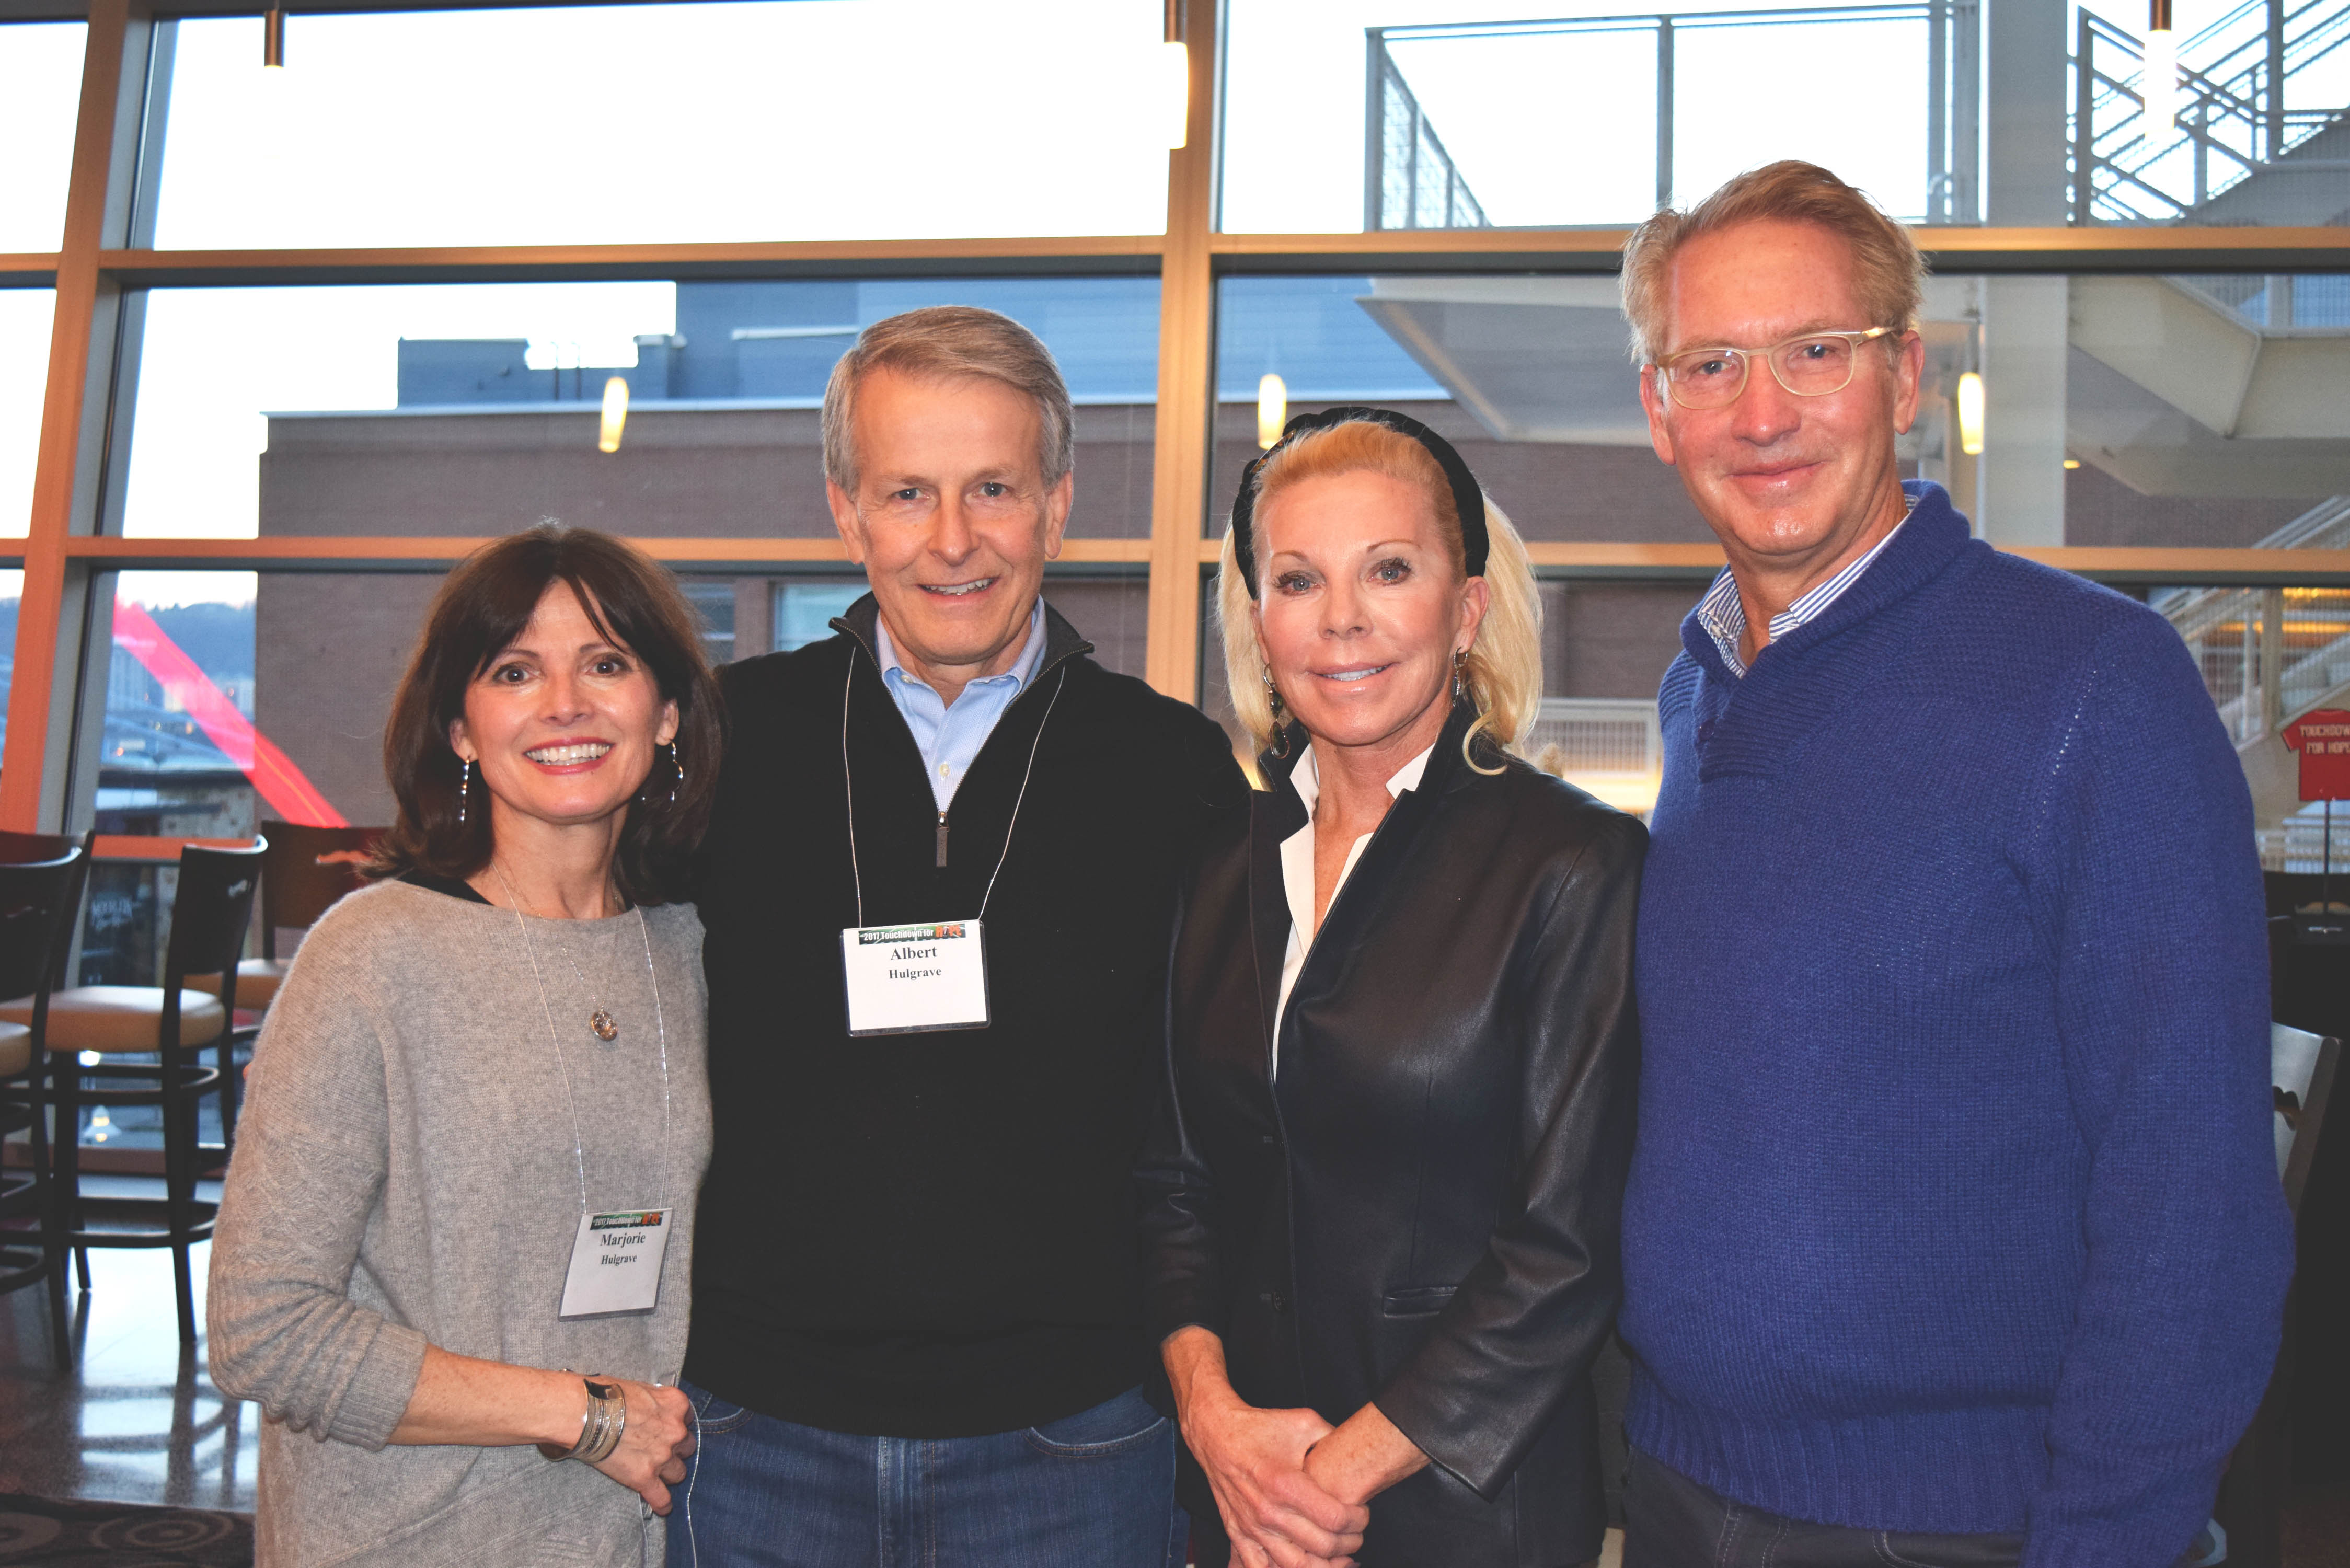 (l-r) Marjorie Hulgrave, Albert Hulgrave, Frances Lindner and Craig Lindner attended Touchdown for HOPE.